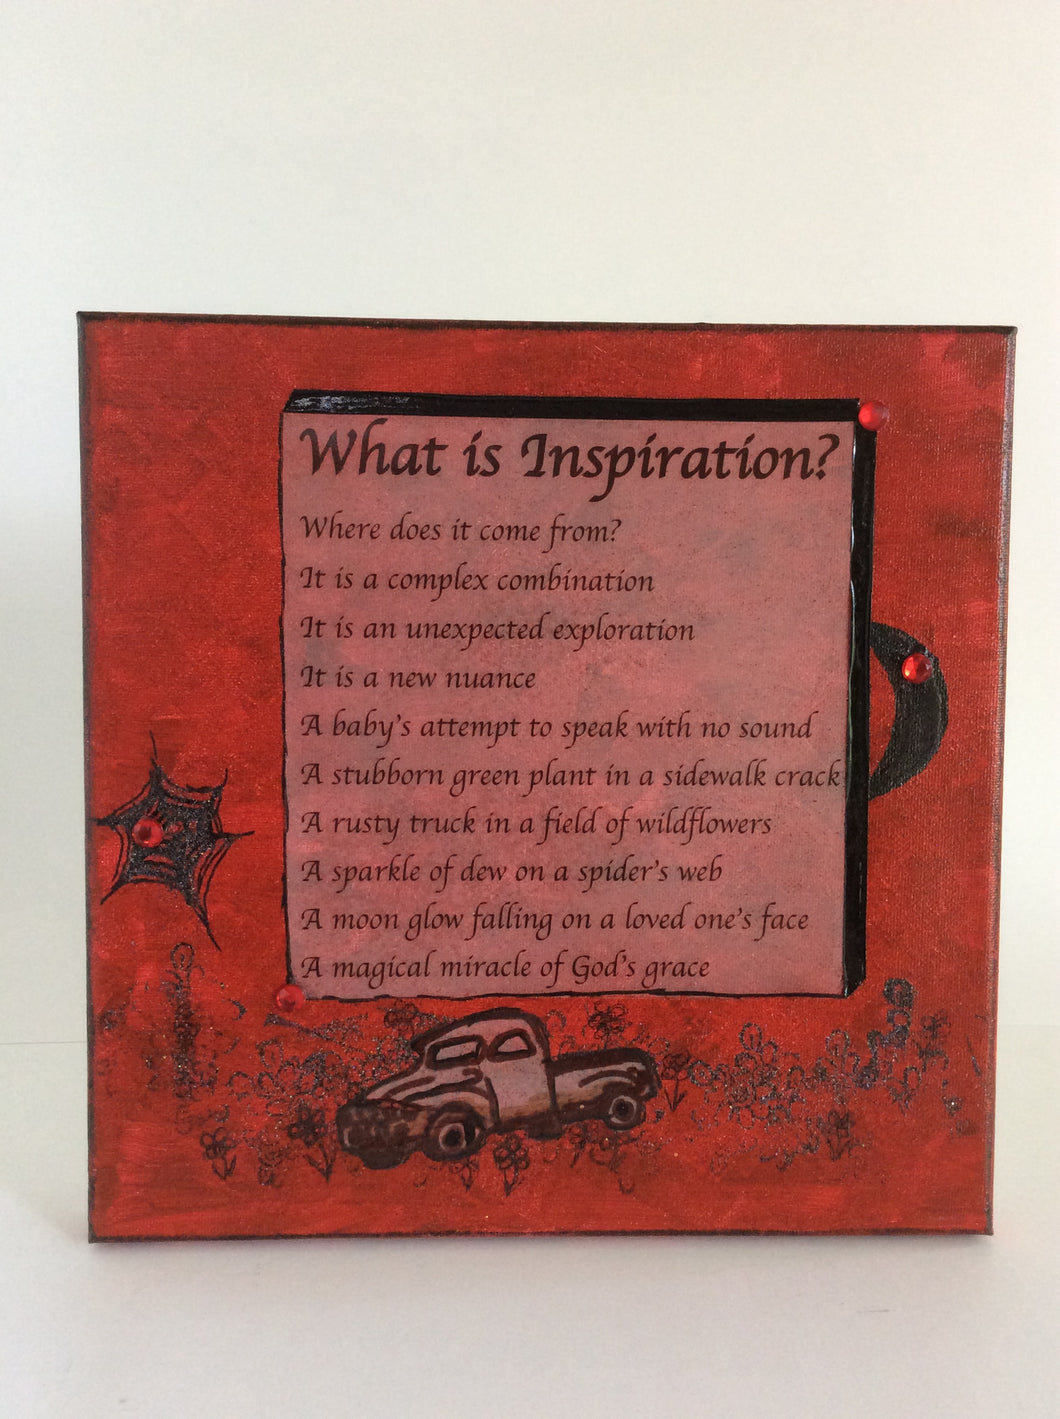 What Is Inspiration? is an original poem on canvas shown in red from poempieces.com